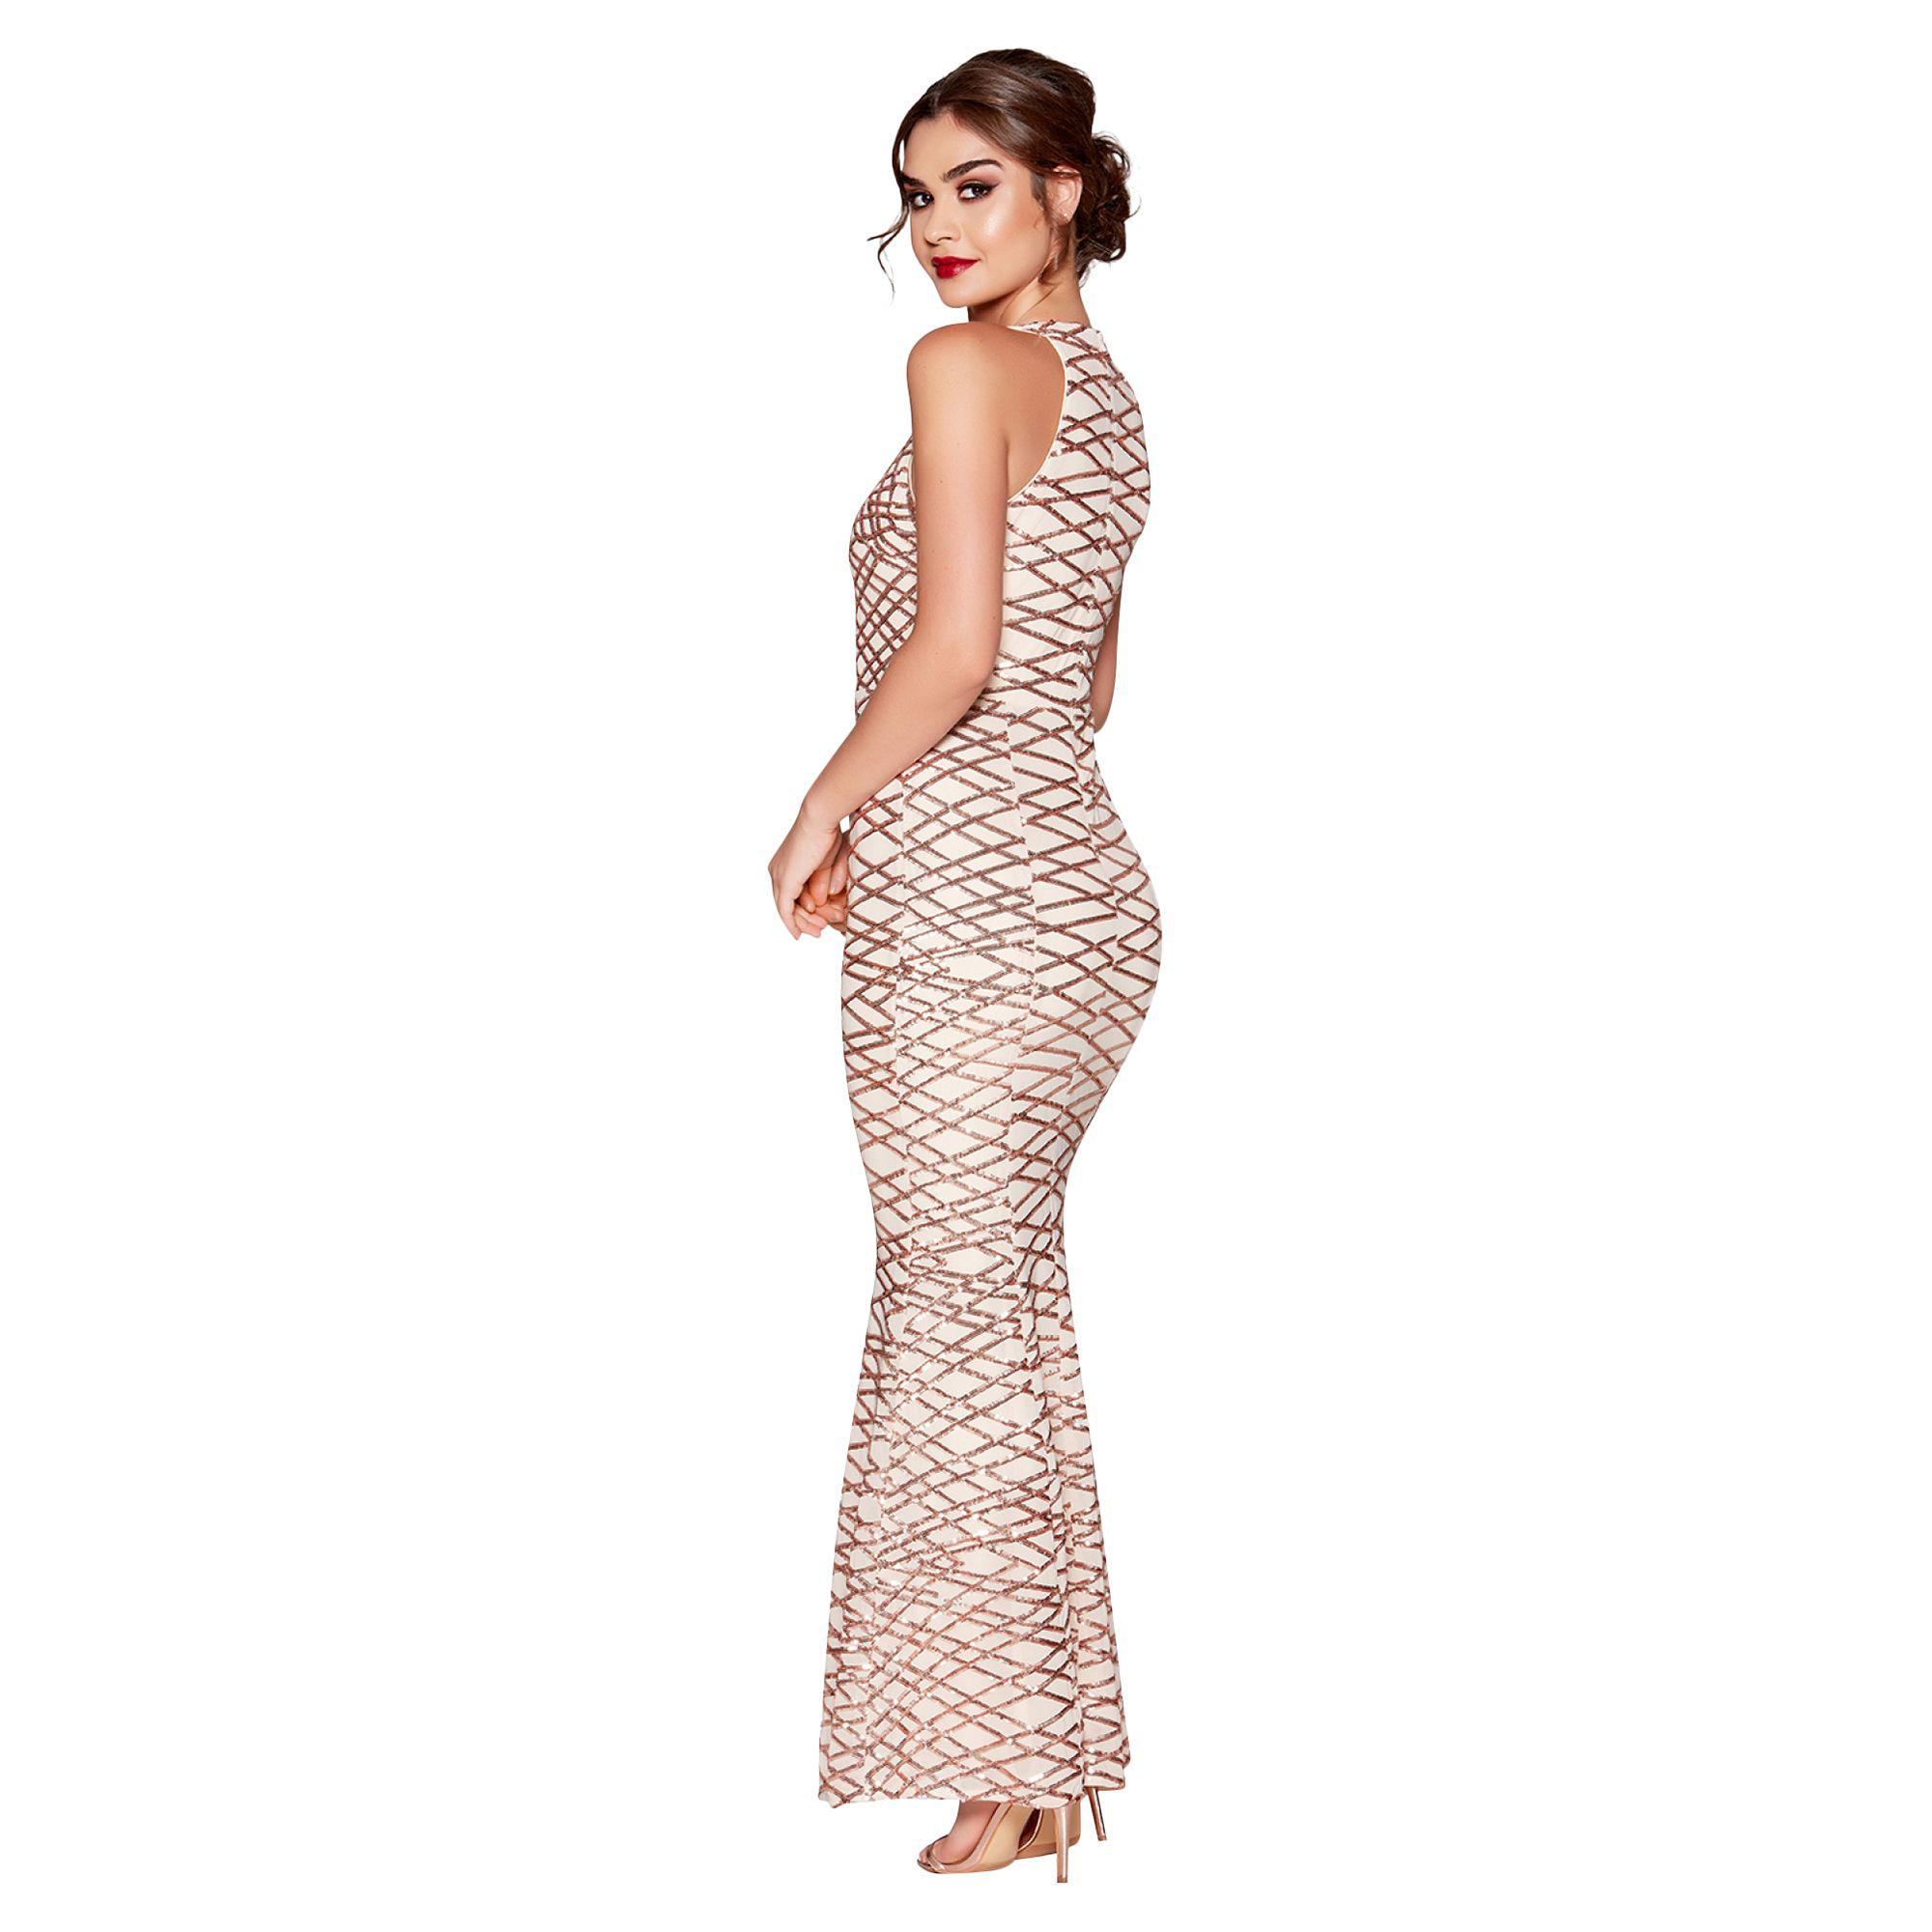 ff0712a8ff04d Quiz Rose Gold Sequin And Mesh Fishtail Maxi Dress in Metallic - Lyst